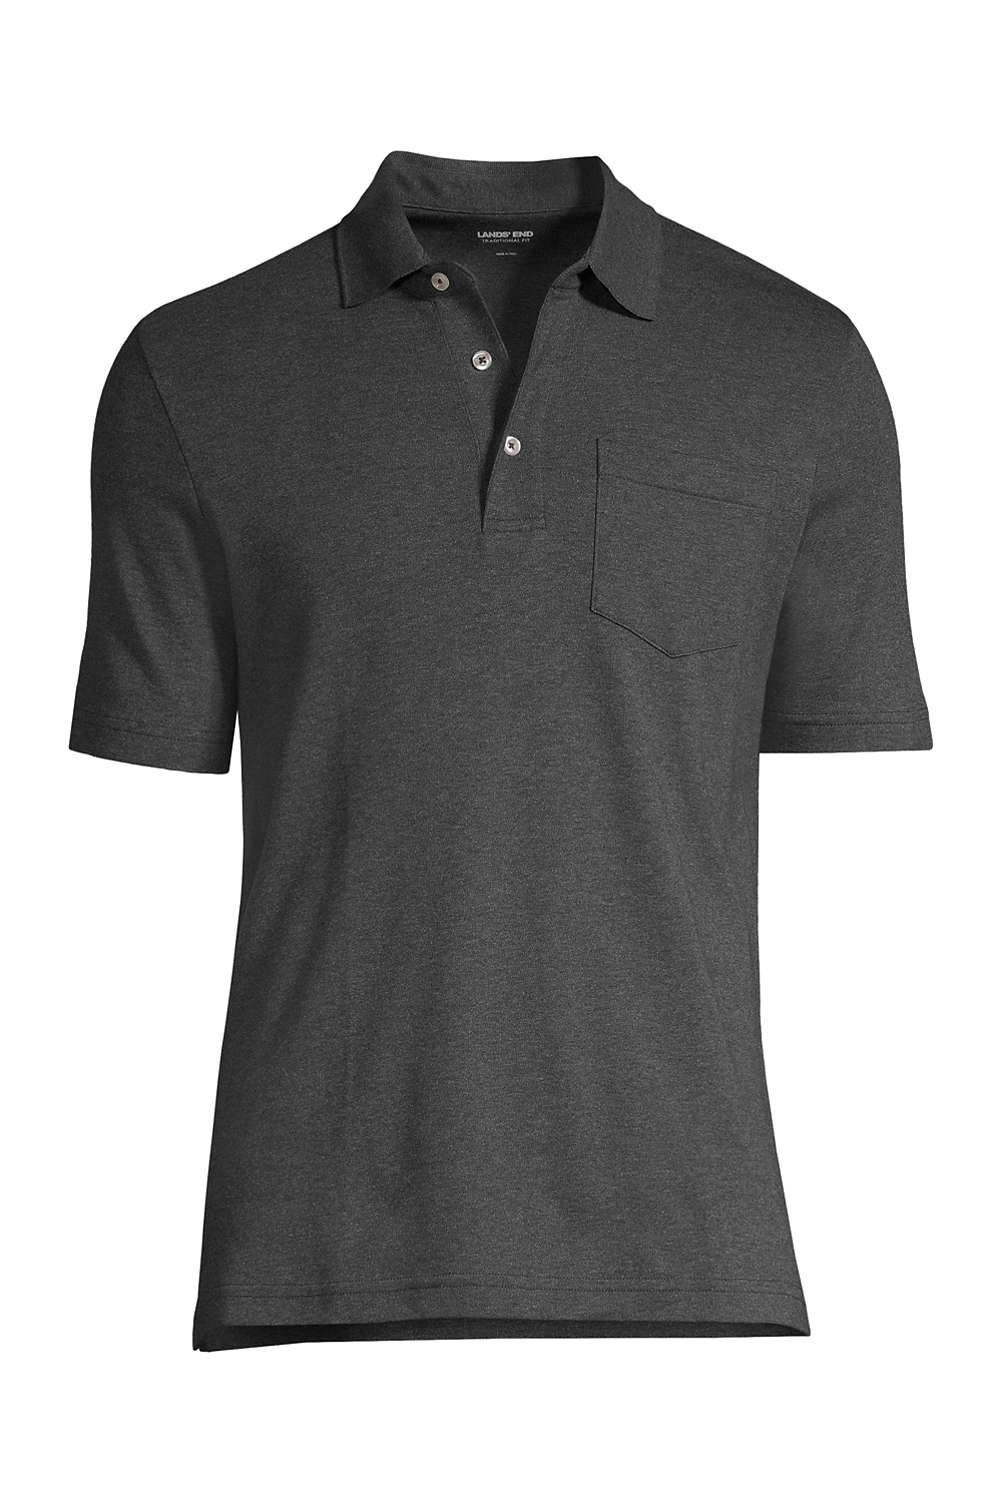 e90f0c4e962a Men's Supima Short Sleeve Polo Shirt with Pocket from Lands' End